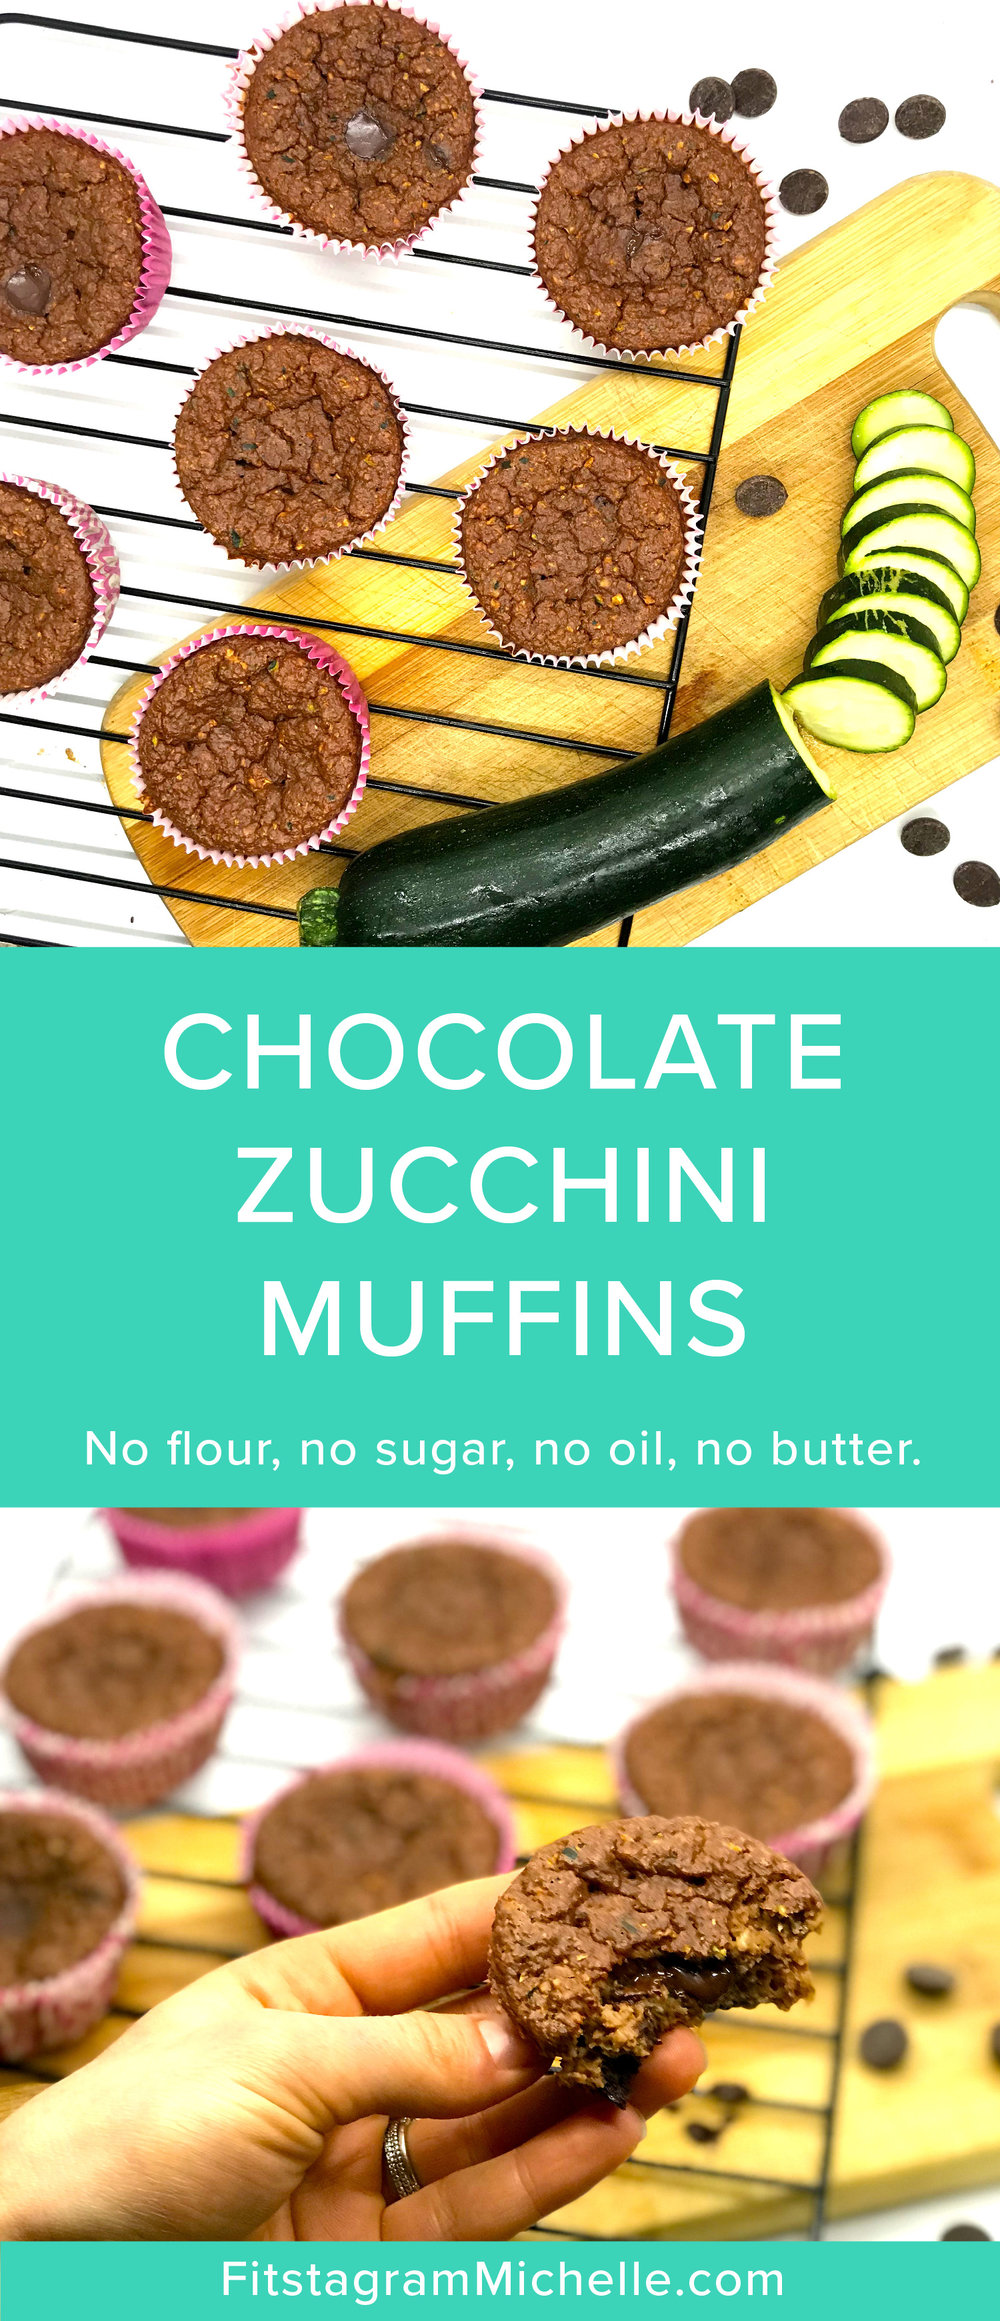 Healthy Chocolate Zucchini Muffins made with the superfood, cacao. No flour, no sugar, no oil, no butter. Just clean ingredients. See fitstagrammichelle.com for the full recipe.